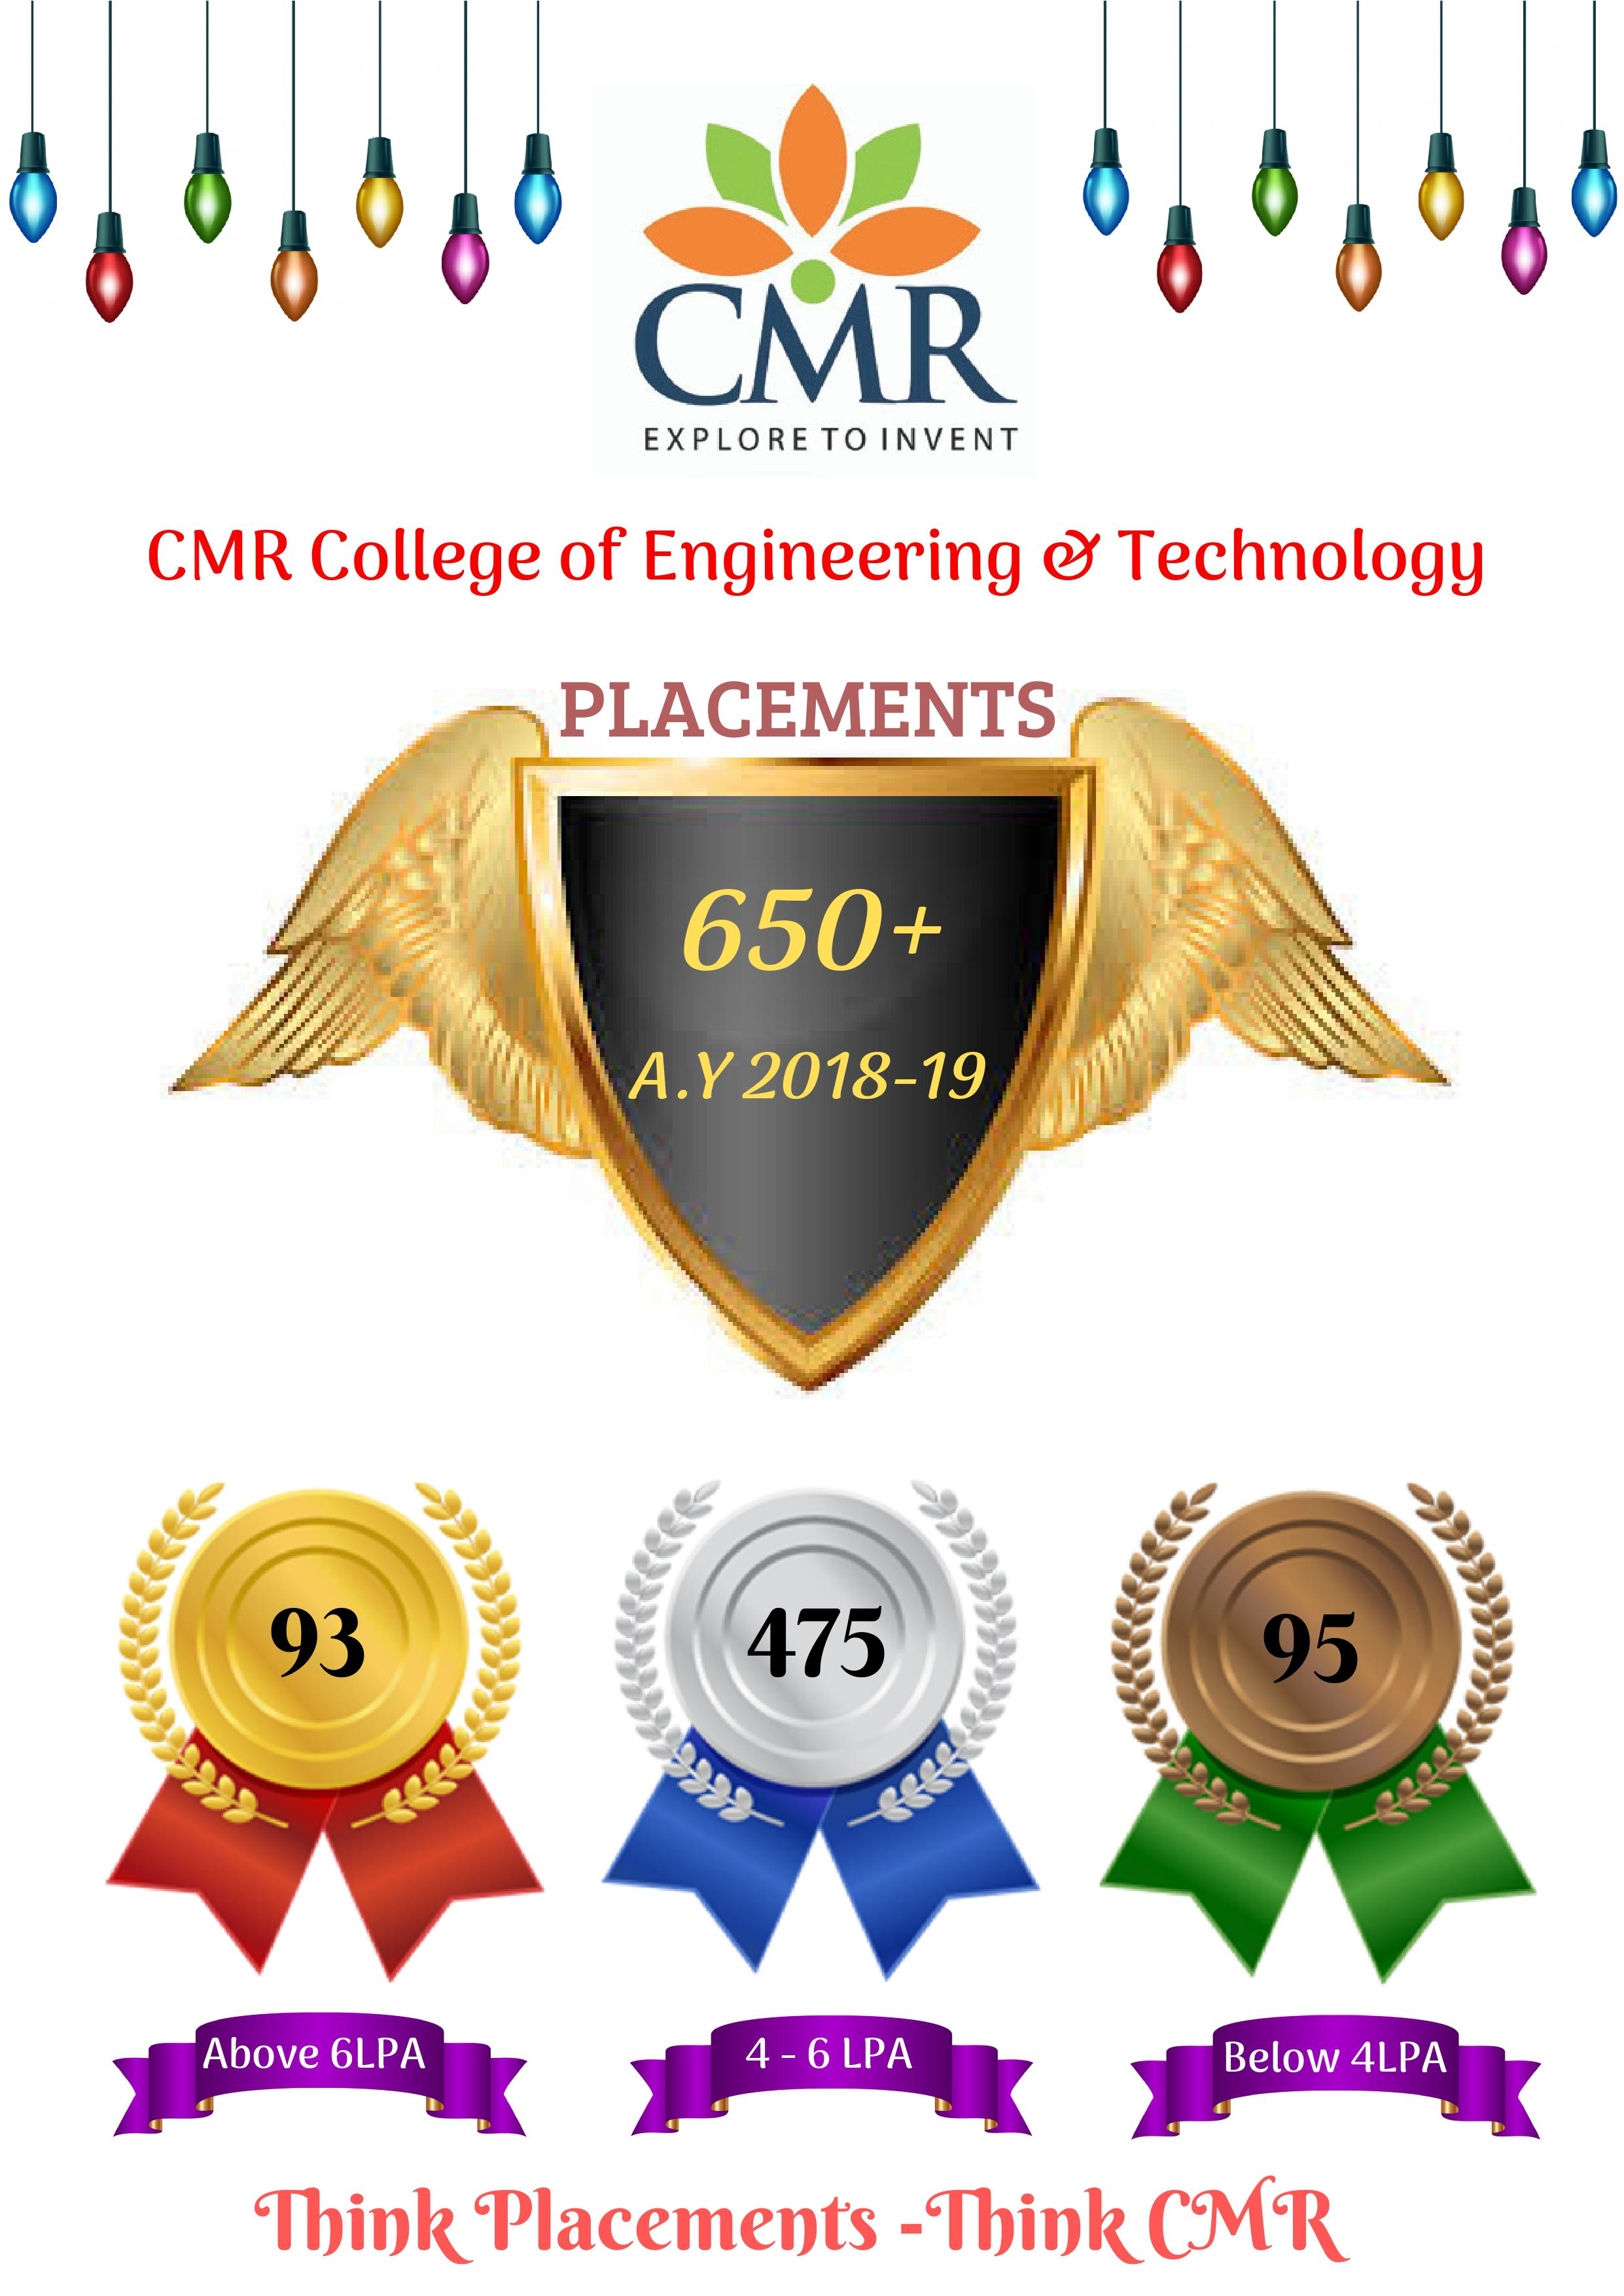 CMR College of Engineering & Technology | Top Engineering College in